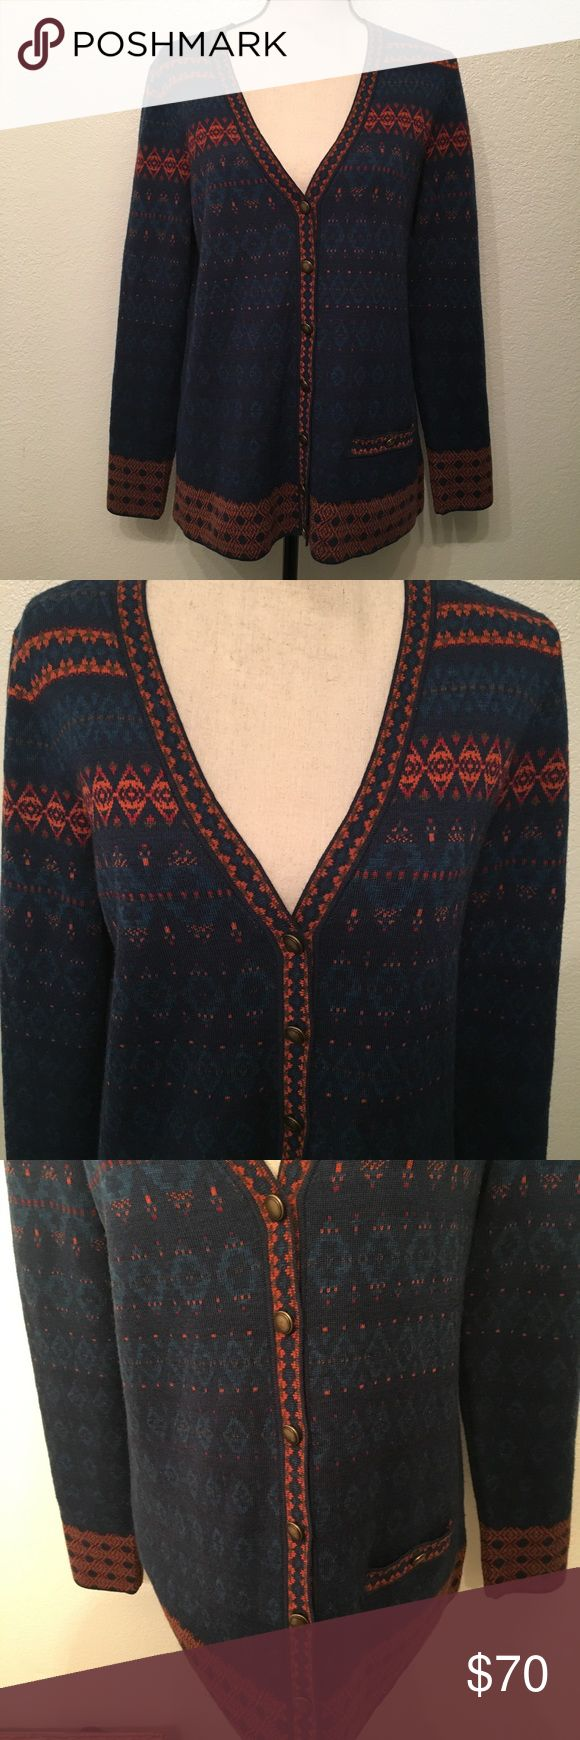 🐑 Pendleton Wool Aztec Print Cardigan 🐑 Pendleton Cardigan 🐑 Perfect fall colors 🐑 Size Large 🐑 I checked the sweater throughly and there are no holes or rips 🐑 Posted a picture of something that may be considered a flaw (Not sure) 🐑 Pendleton Sweaters Cardigans